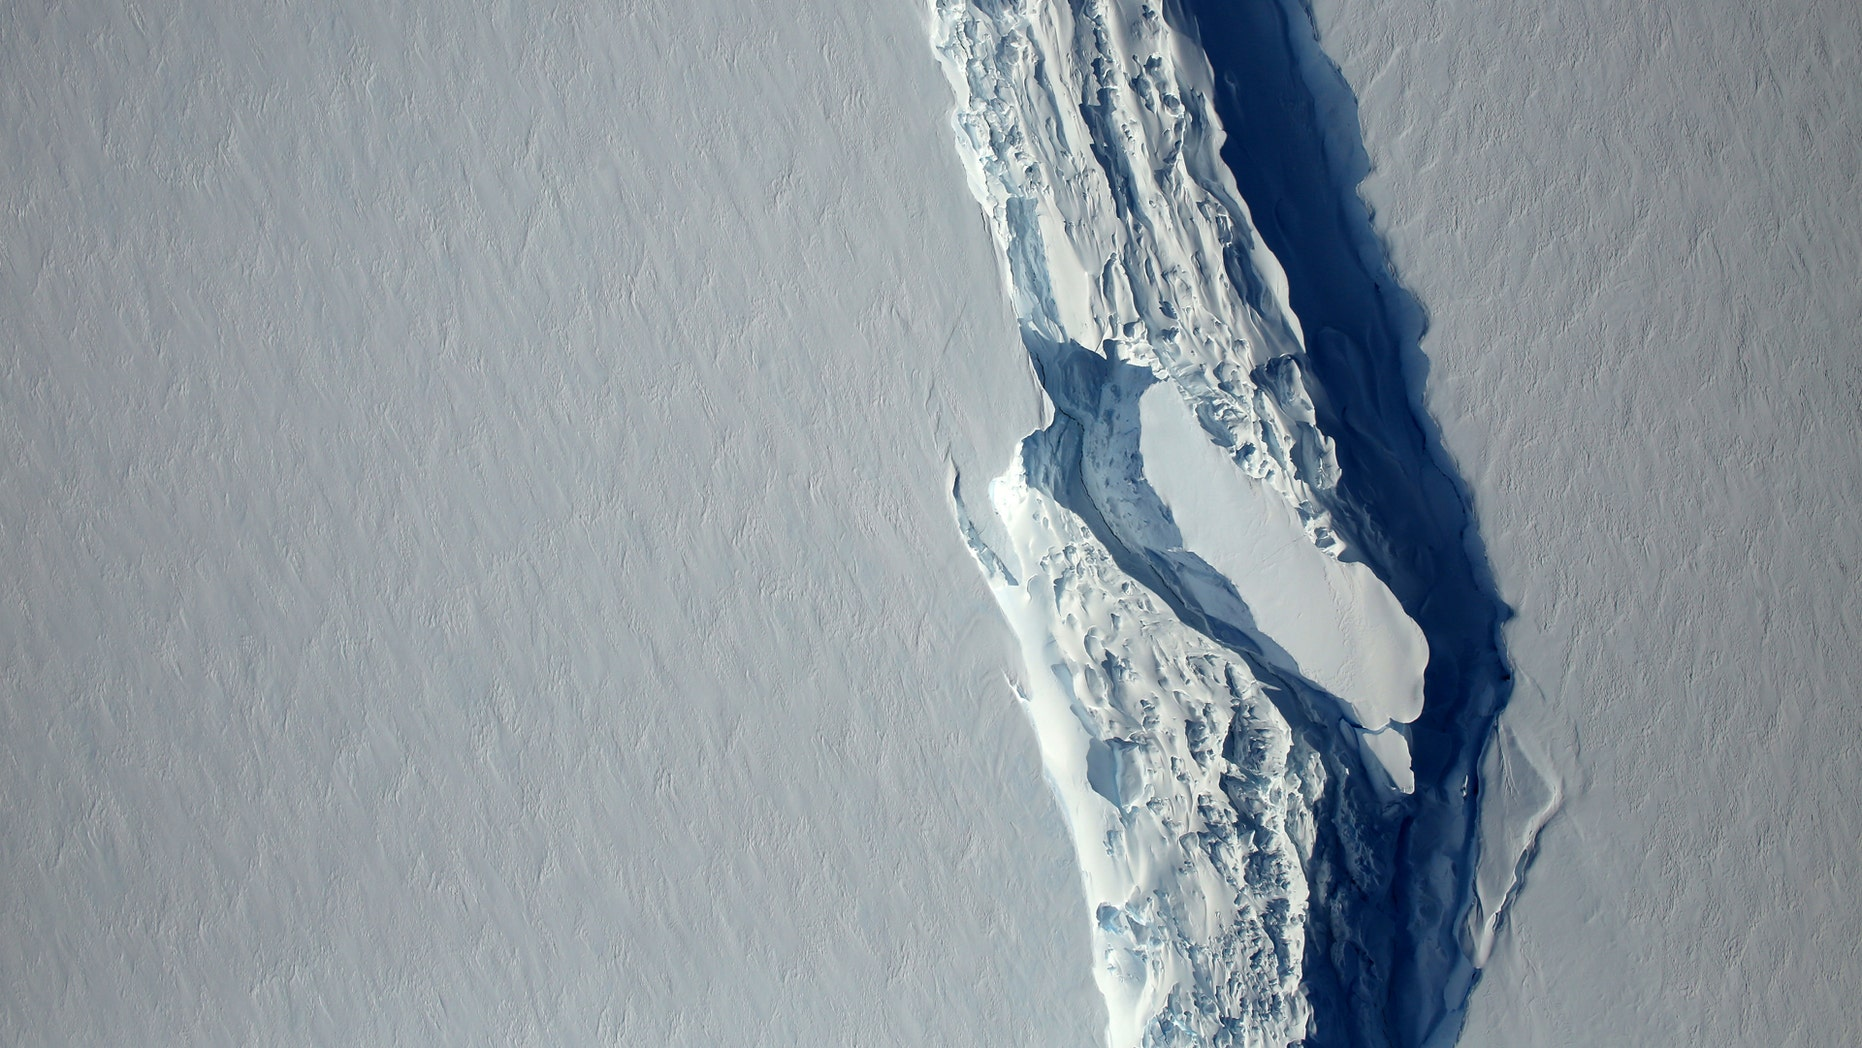 File photo - An aerial view of the rift in the Larsen C seen in an image from the Digital Mapping System over the Antarctica Peninsula, Antarctica, on November 10, 2016. (NASA's Goddard Space Flight Center/Handout via REUTERS)